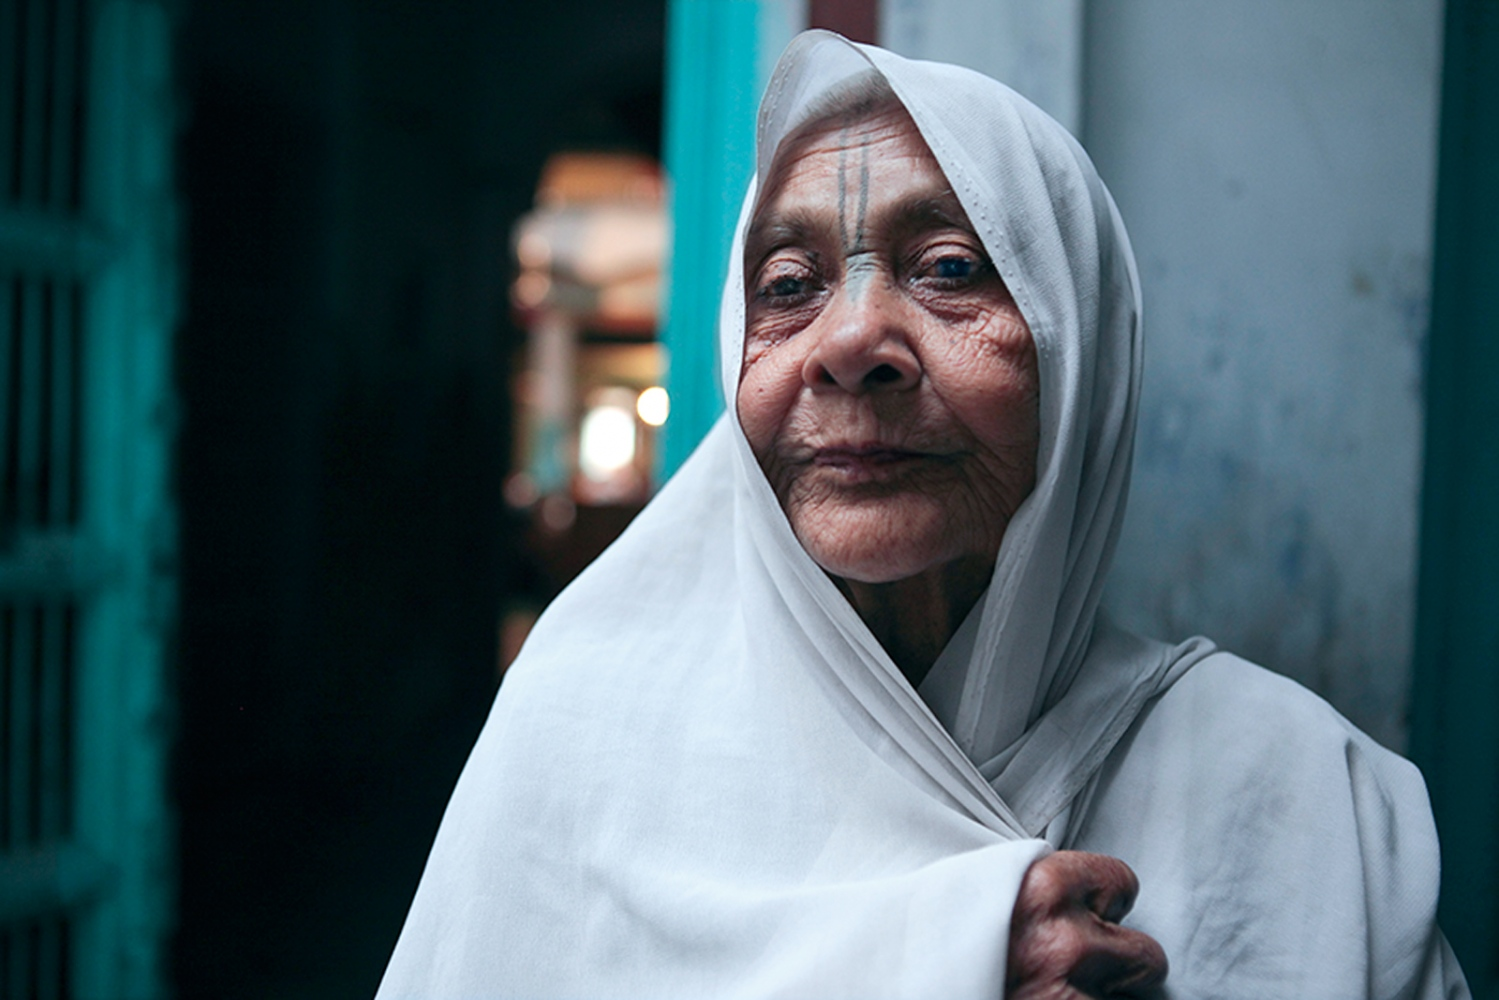 The86years old widow Rani, chantsevery dayat the ashram. Founded with the honorable intention of providing succor and safe haven to widows, has now deteriorated. Today, widows chant for seven hours a day and get paid six rupees (50 rupees=$1.)